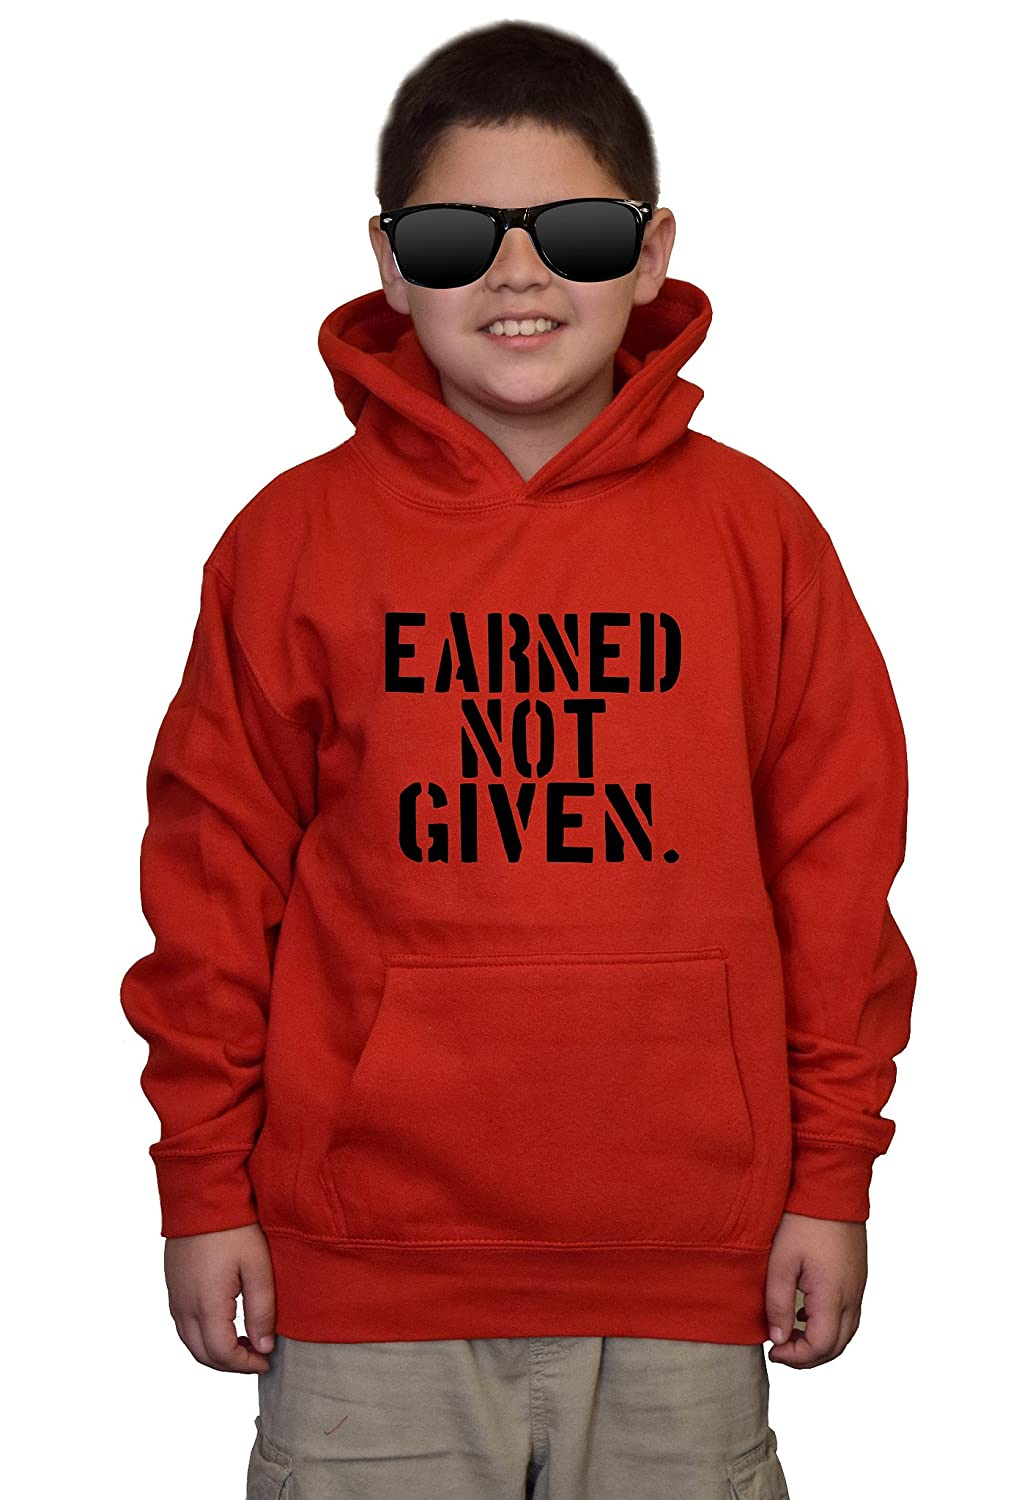 Youth Earned Not Given V183 Red kids Sweatshirt Hoodie